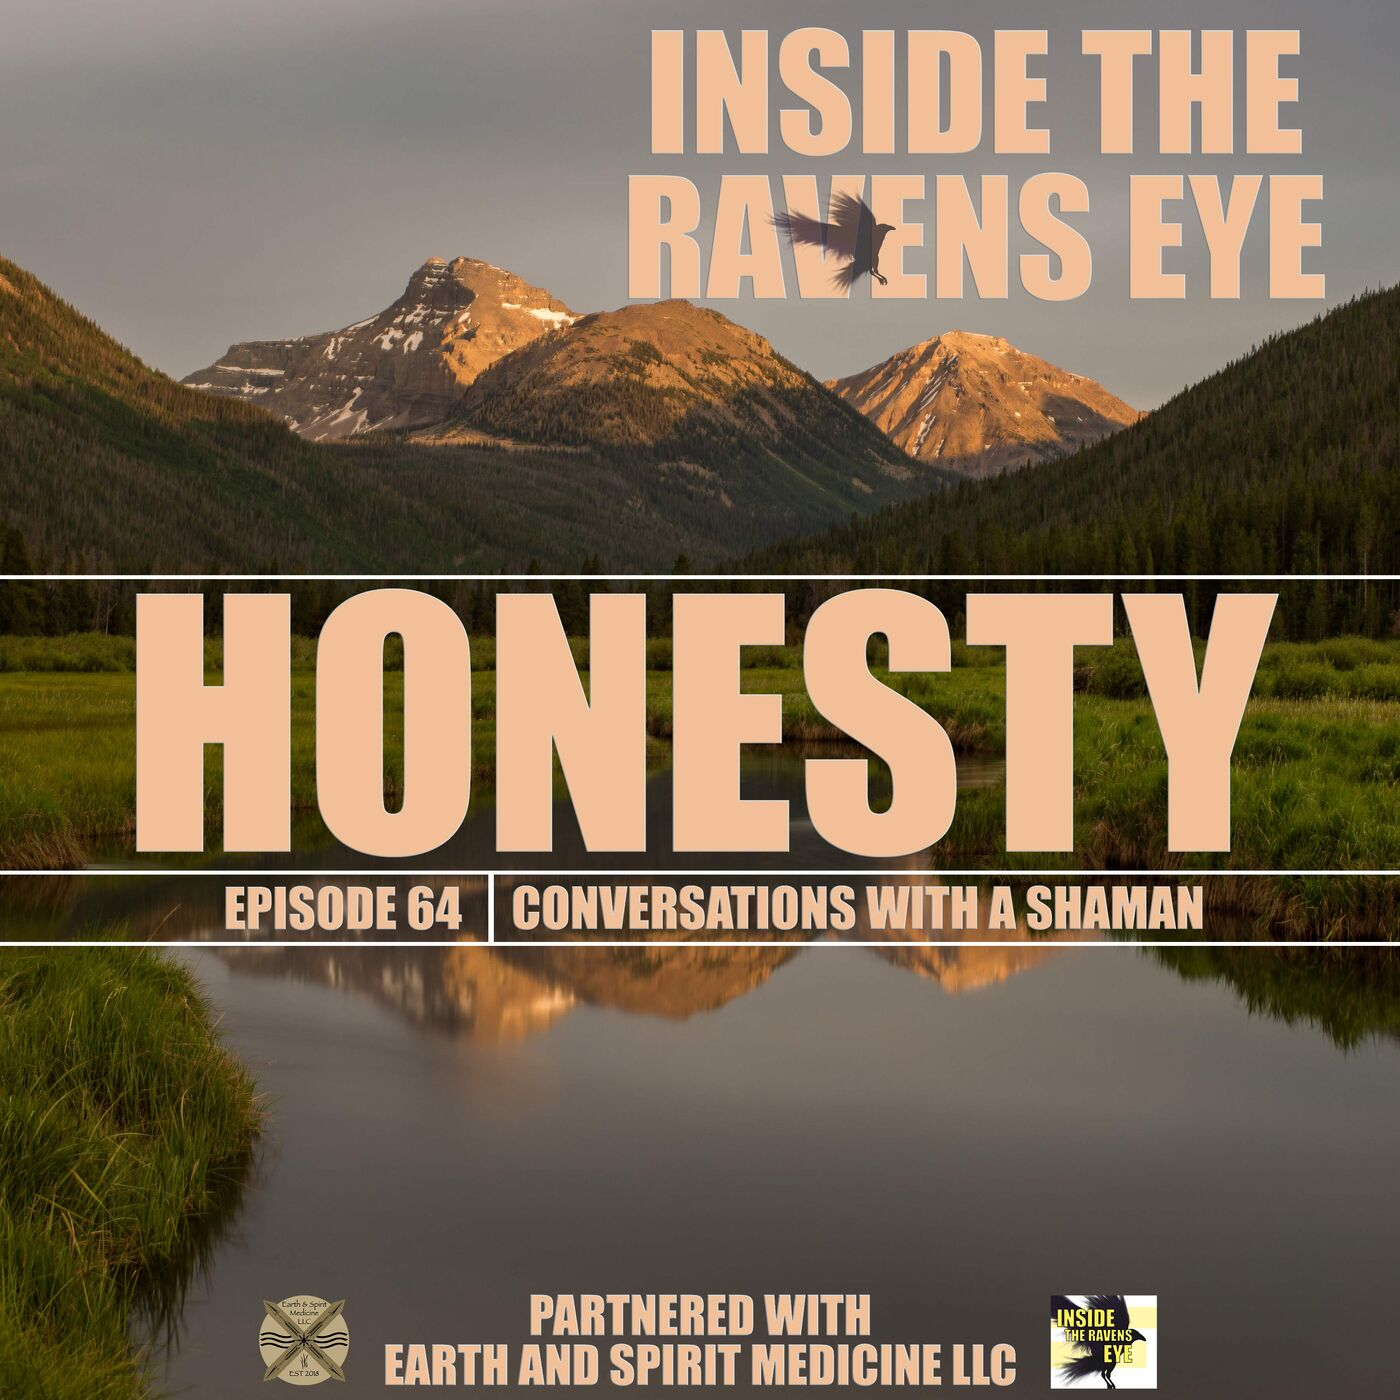 Honesty - Episode 64 - Conversations with a Shaman